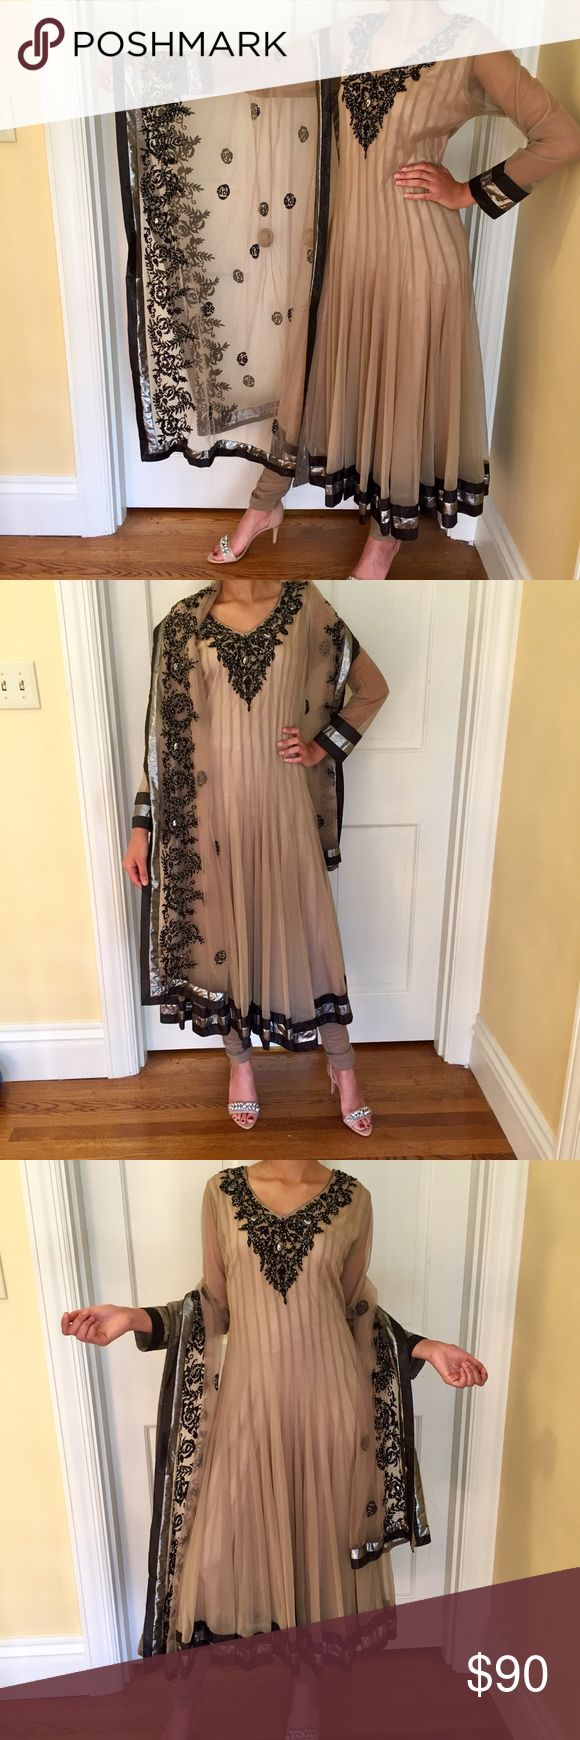 """[NEW] Indian / Pakistani Anarkali (Beige & Black) Need to go to a desi wedding? This is a great dress that is lightweight, easy to wear, and classy at the same time. It's brand new. Adaptable fit and fabric. Falls very nicely.  Approximate measurements: Chest=38"""", Waist=34"""", Hips=42"""", Length=50"""". Ships same or next business day. Let me know if you have any questions at all  Dresses"""